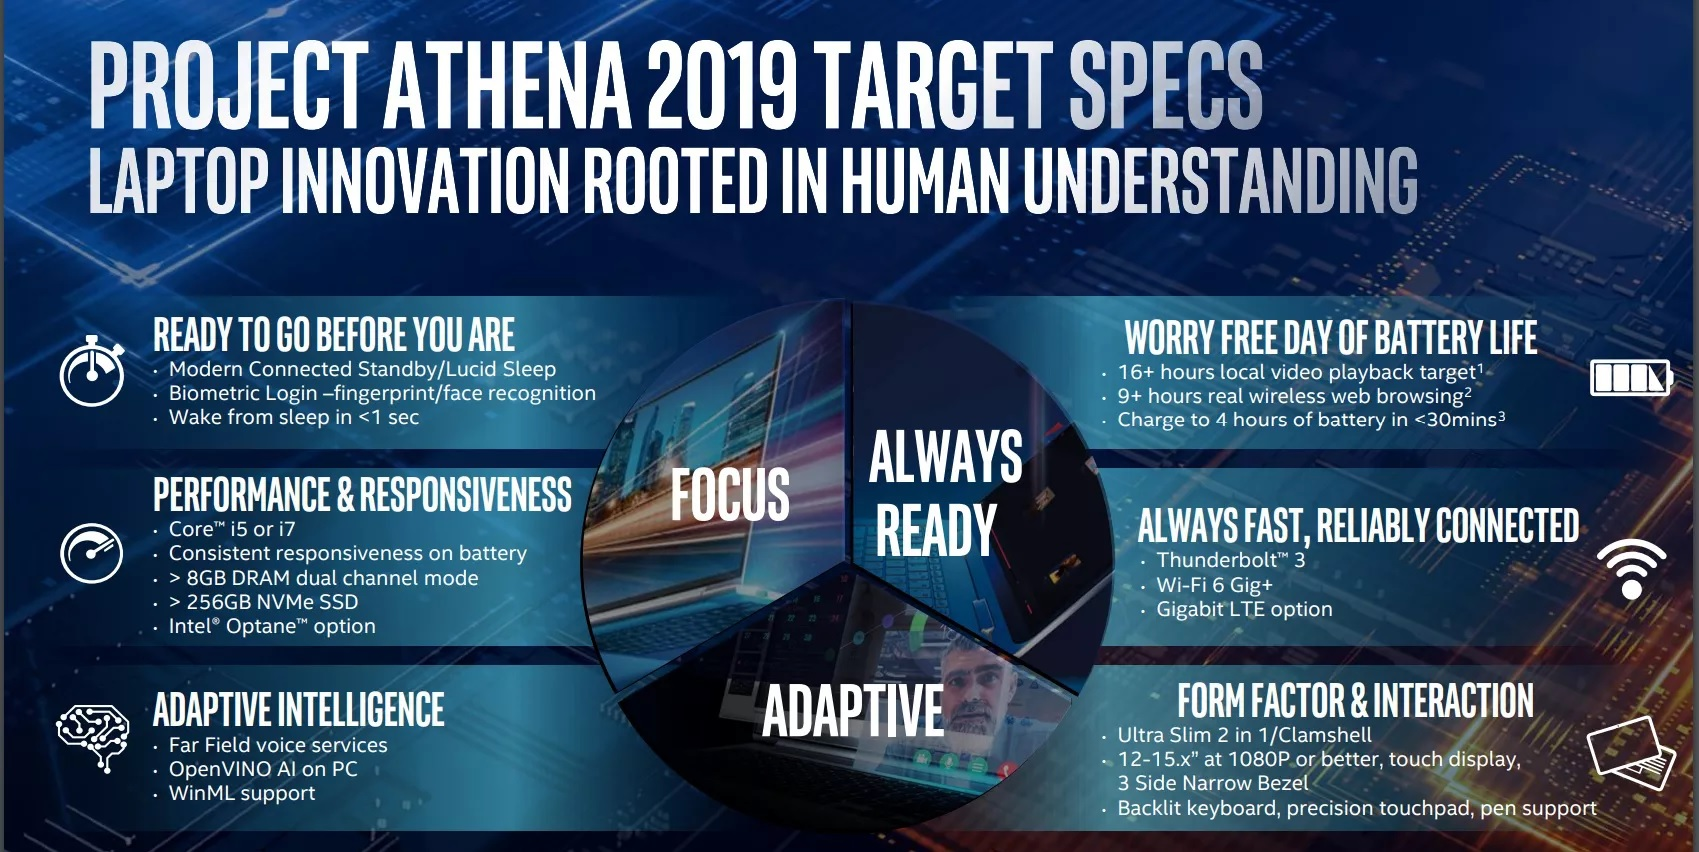 Intel teases Ice lake and details project Athena